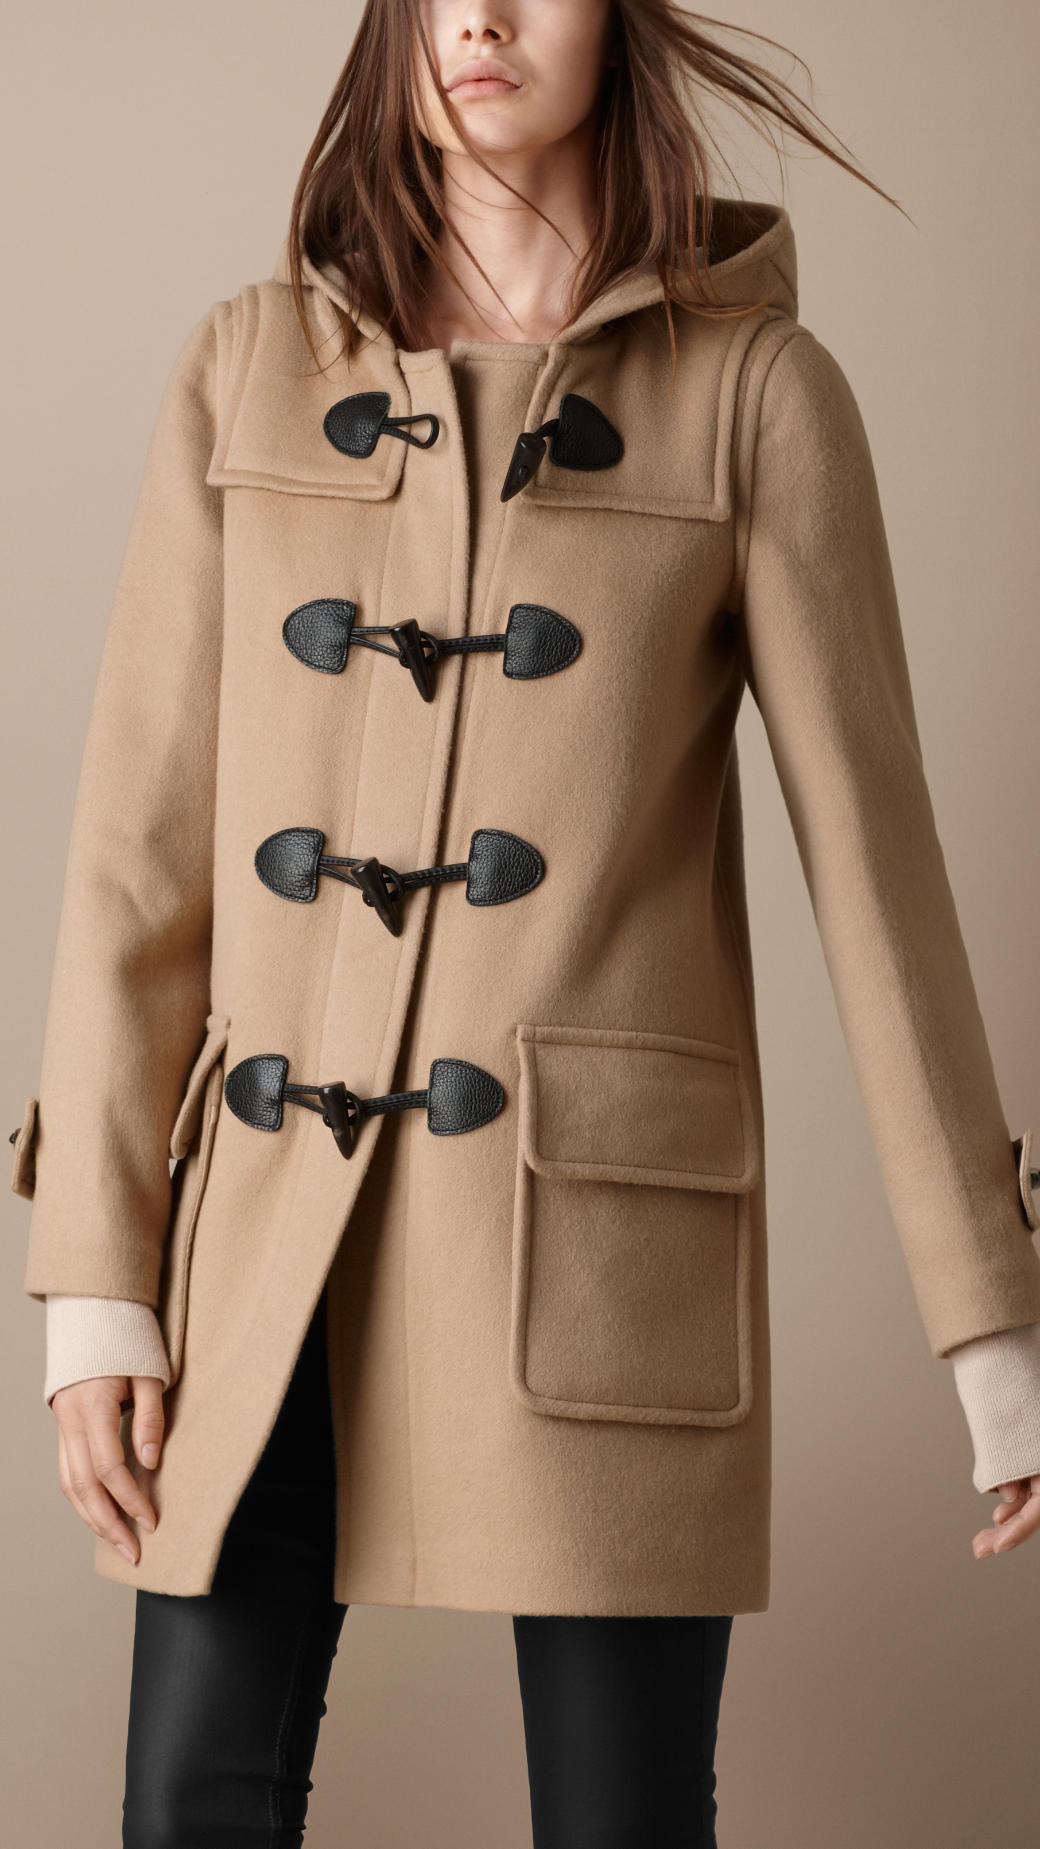 5046e13b8d82e Lyst - Burberry Brit Check Lined Duffle Coat in Natural